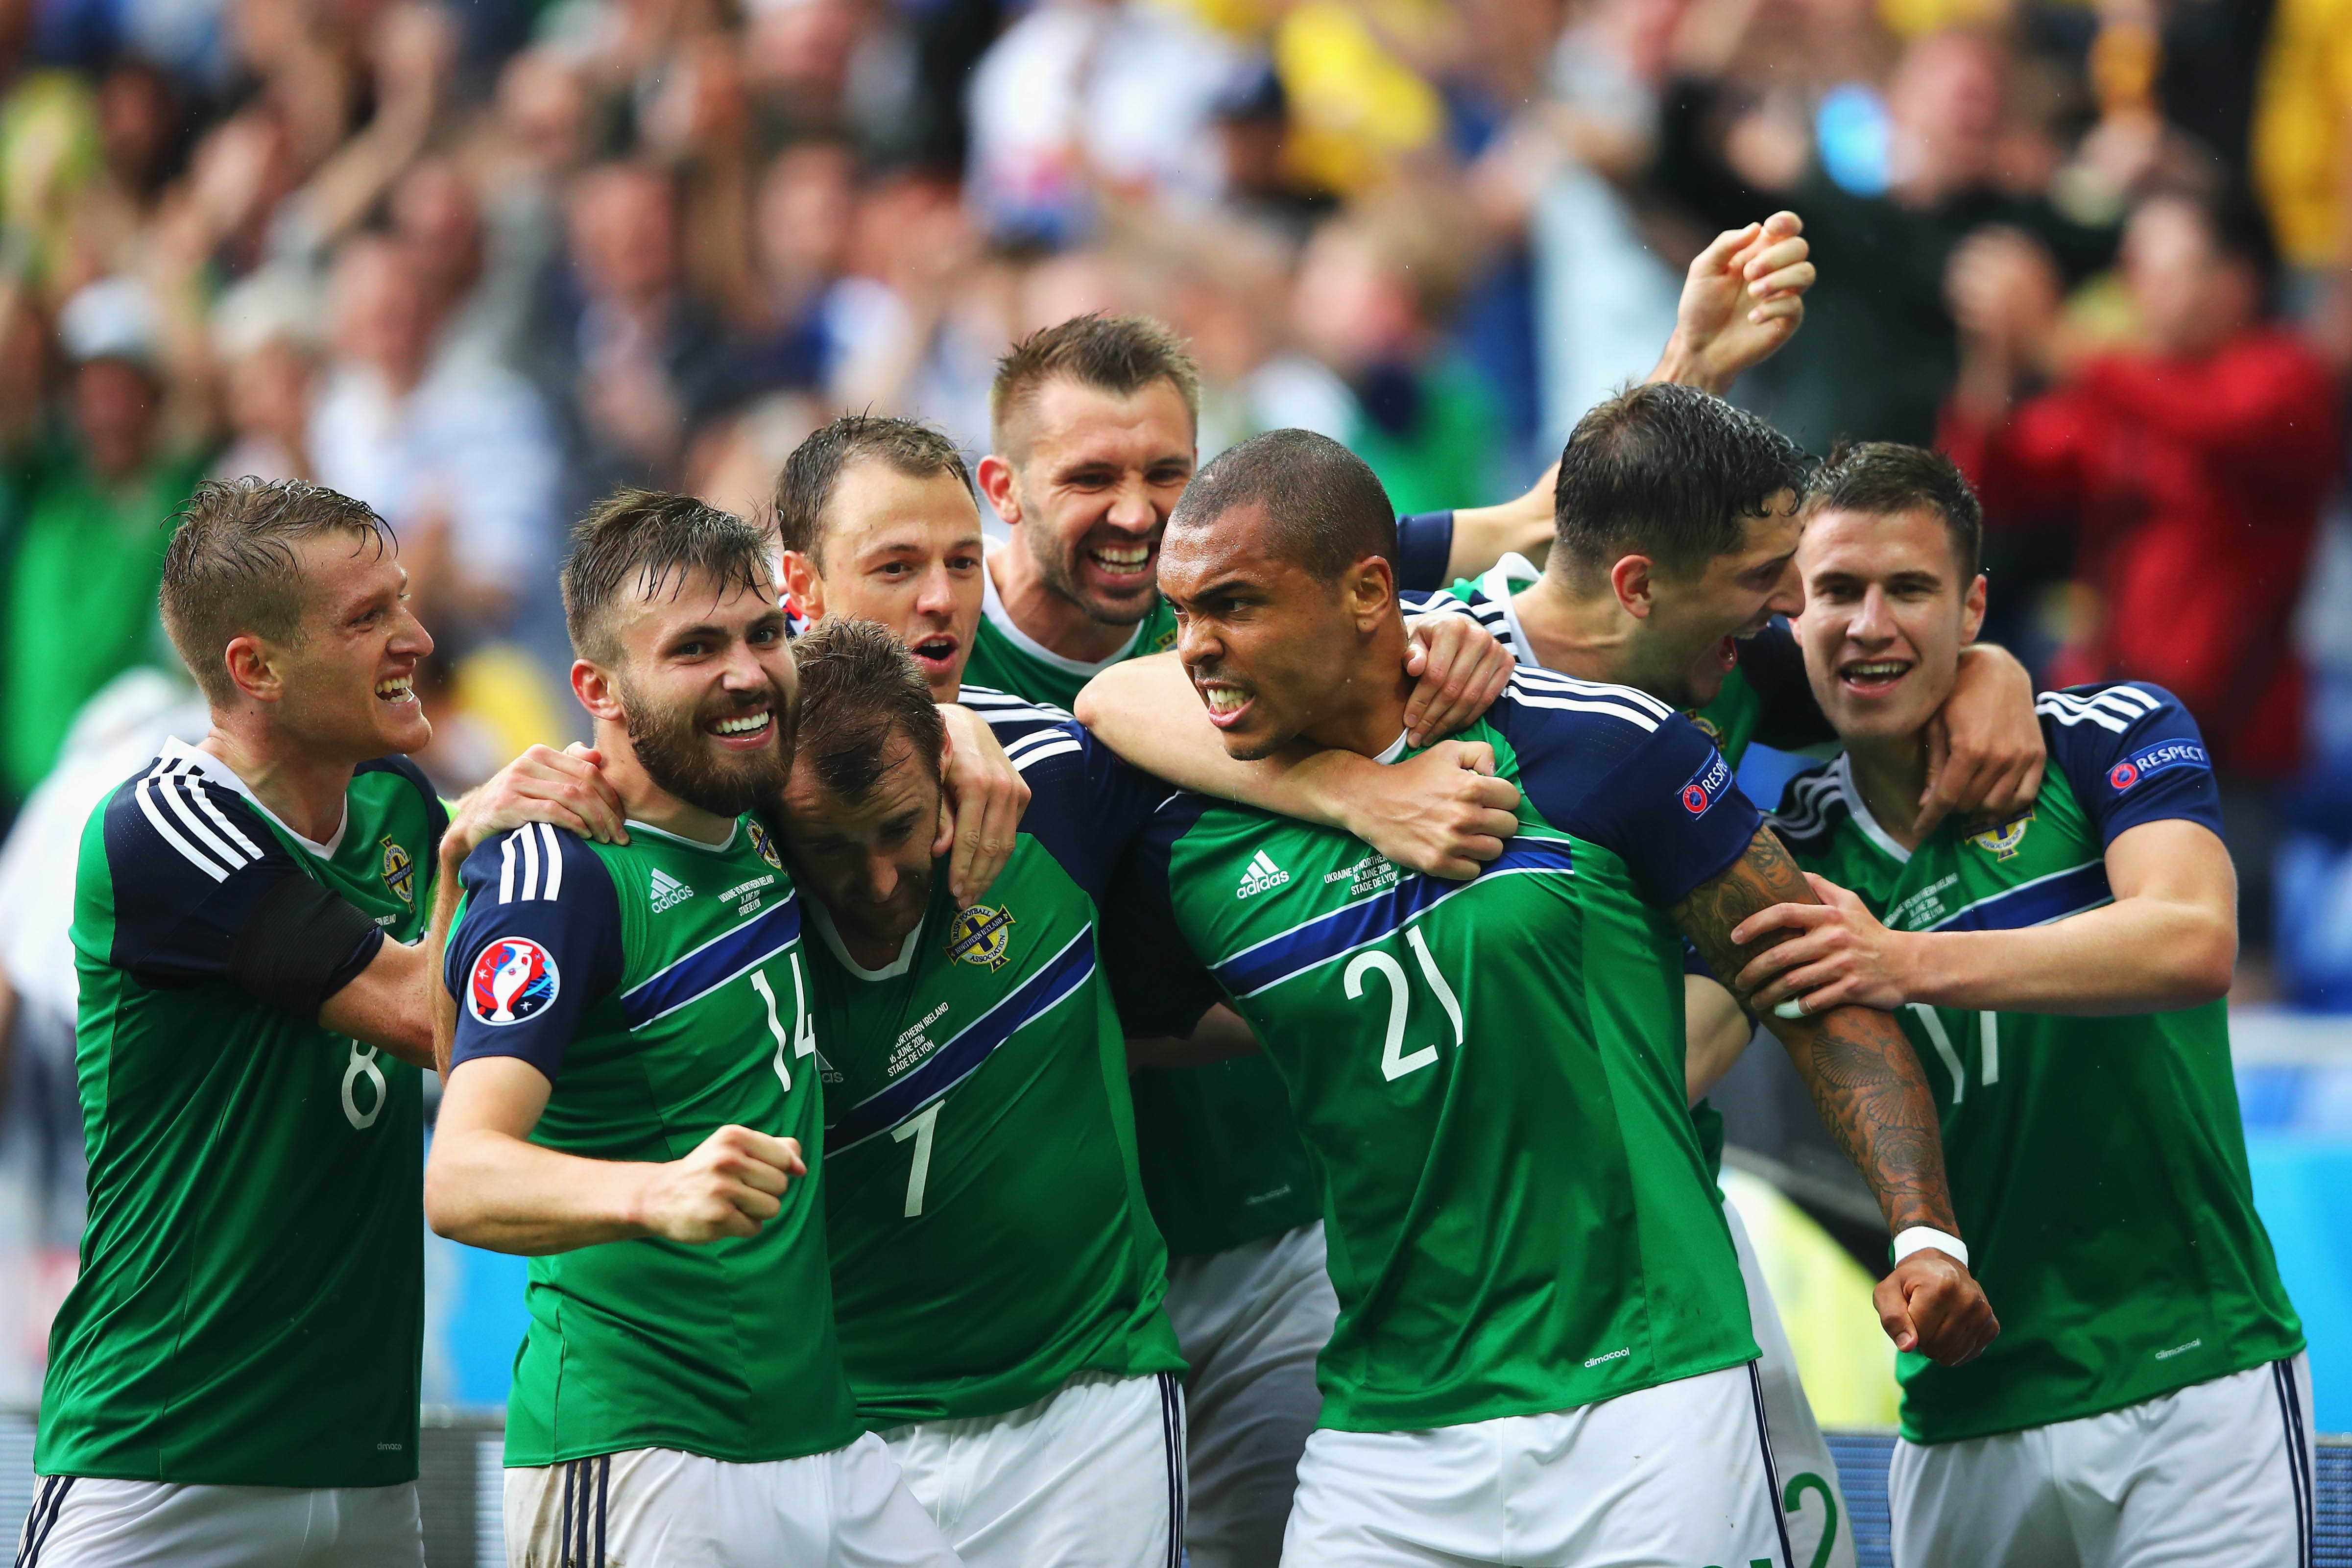 LYON, FRANCE - JUNE 16: Niall McGinn (3rd L) of Northern Ireland celebrates scoring his team's second goal with his team mates during the UEFA EURO 2016 Group C match between Ukraine and Northern Ireland at Stade des Lumieres on June 16, 2016 in Lyon, France. (Photo by Clive Brunskill/Getty Images)